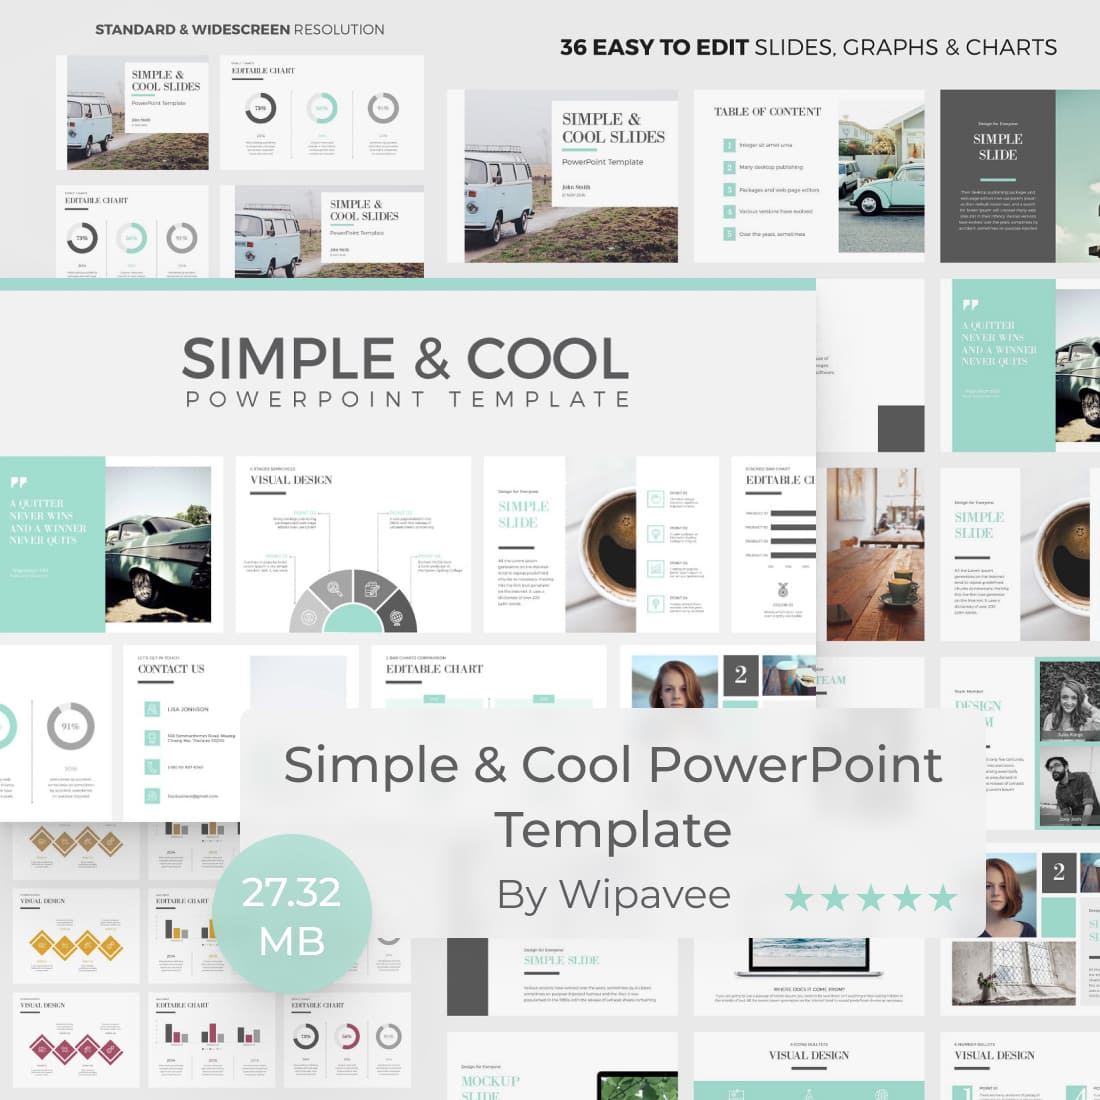 Simple & Cool PowerPoint Template by MasterBundles.